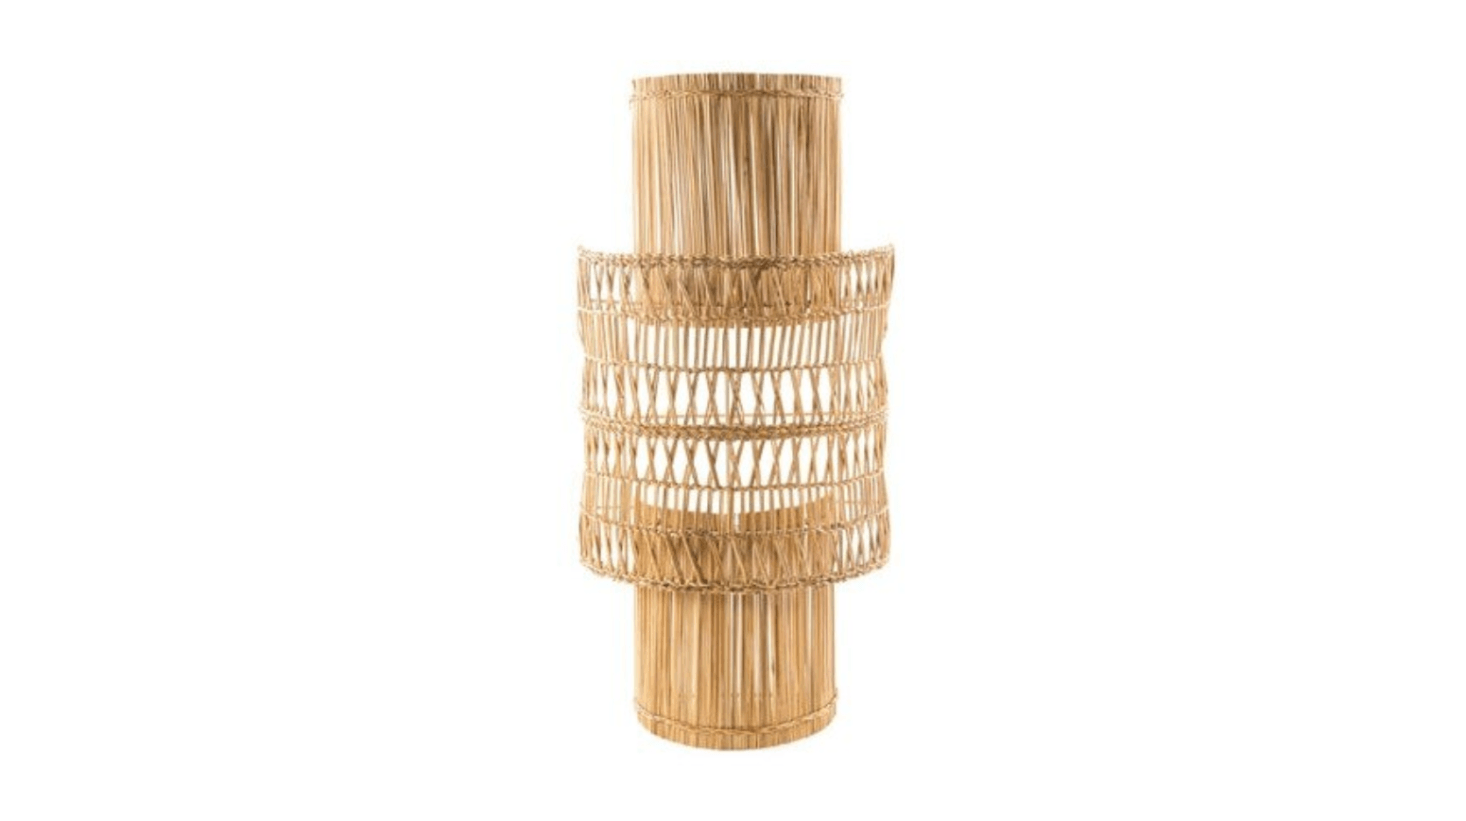 The Sconce Candil shade is made of bulrush over a metal frame; $9 from Maison of Hand.